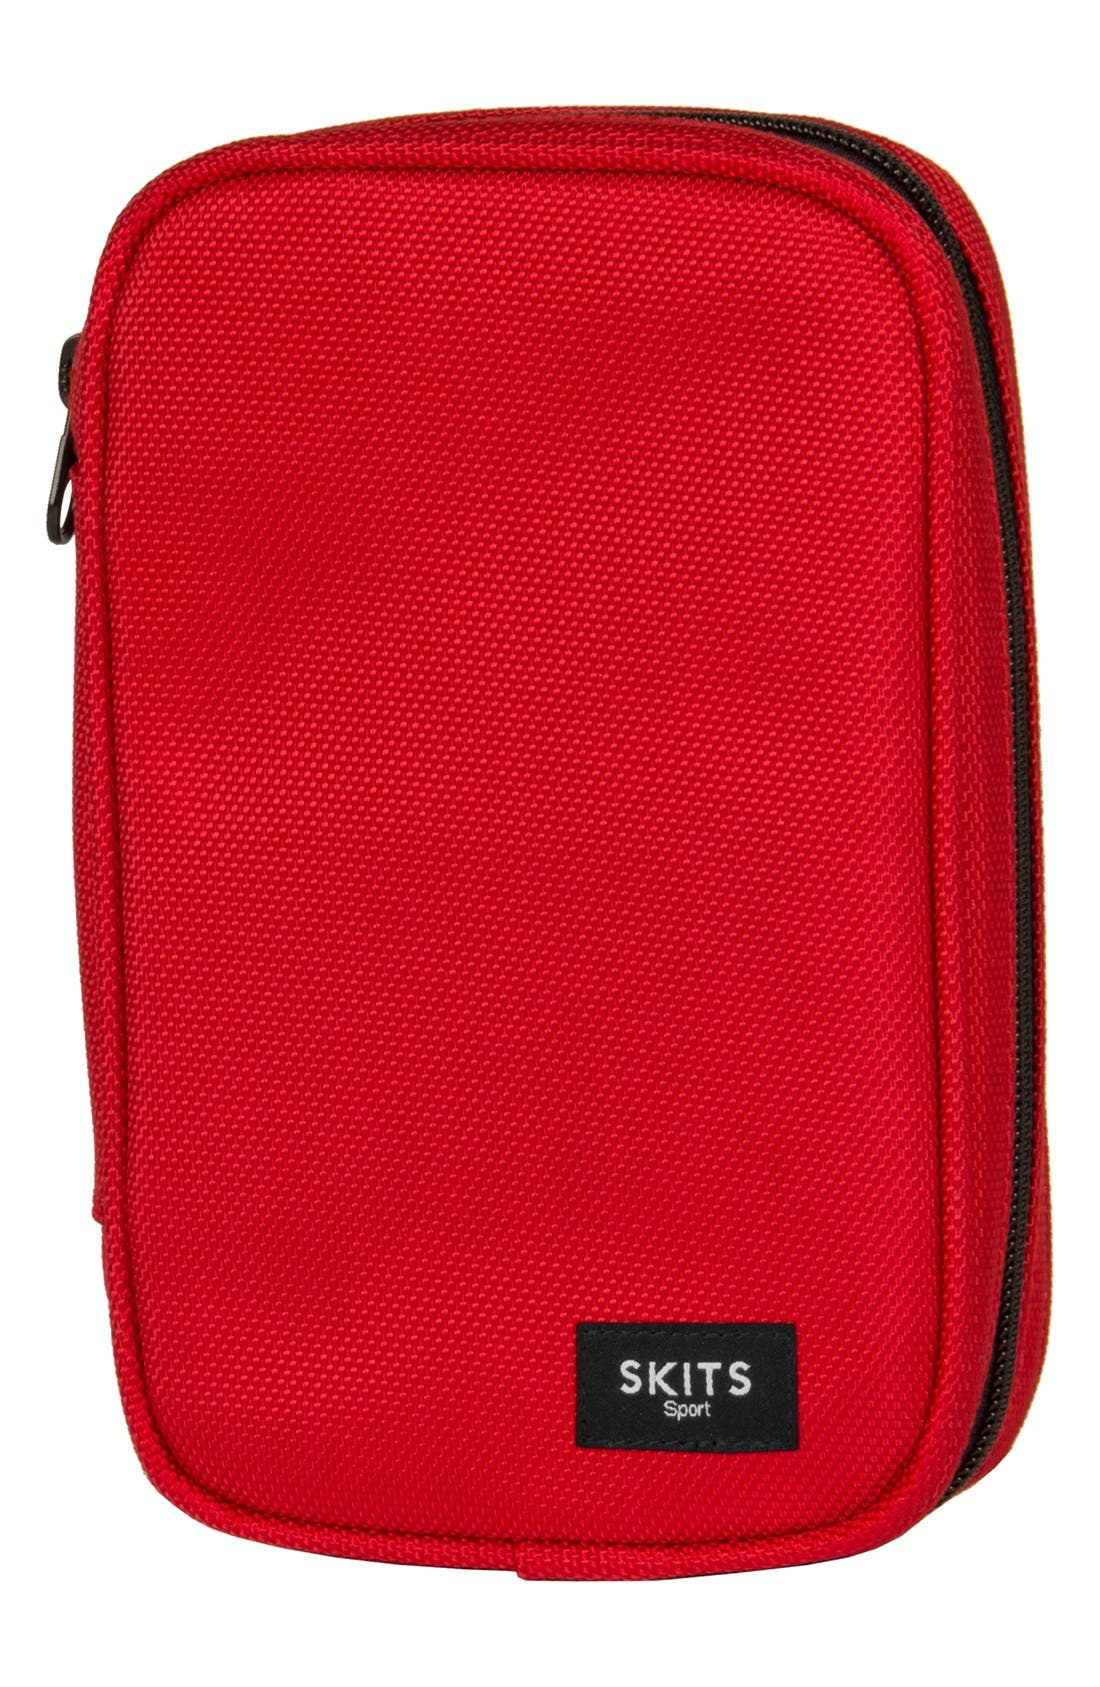 SKITS Clever - Sport Poly Tech Case